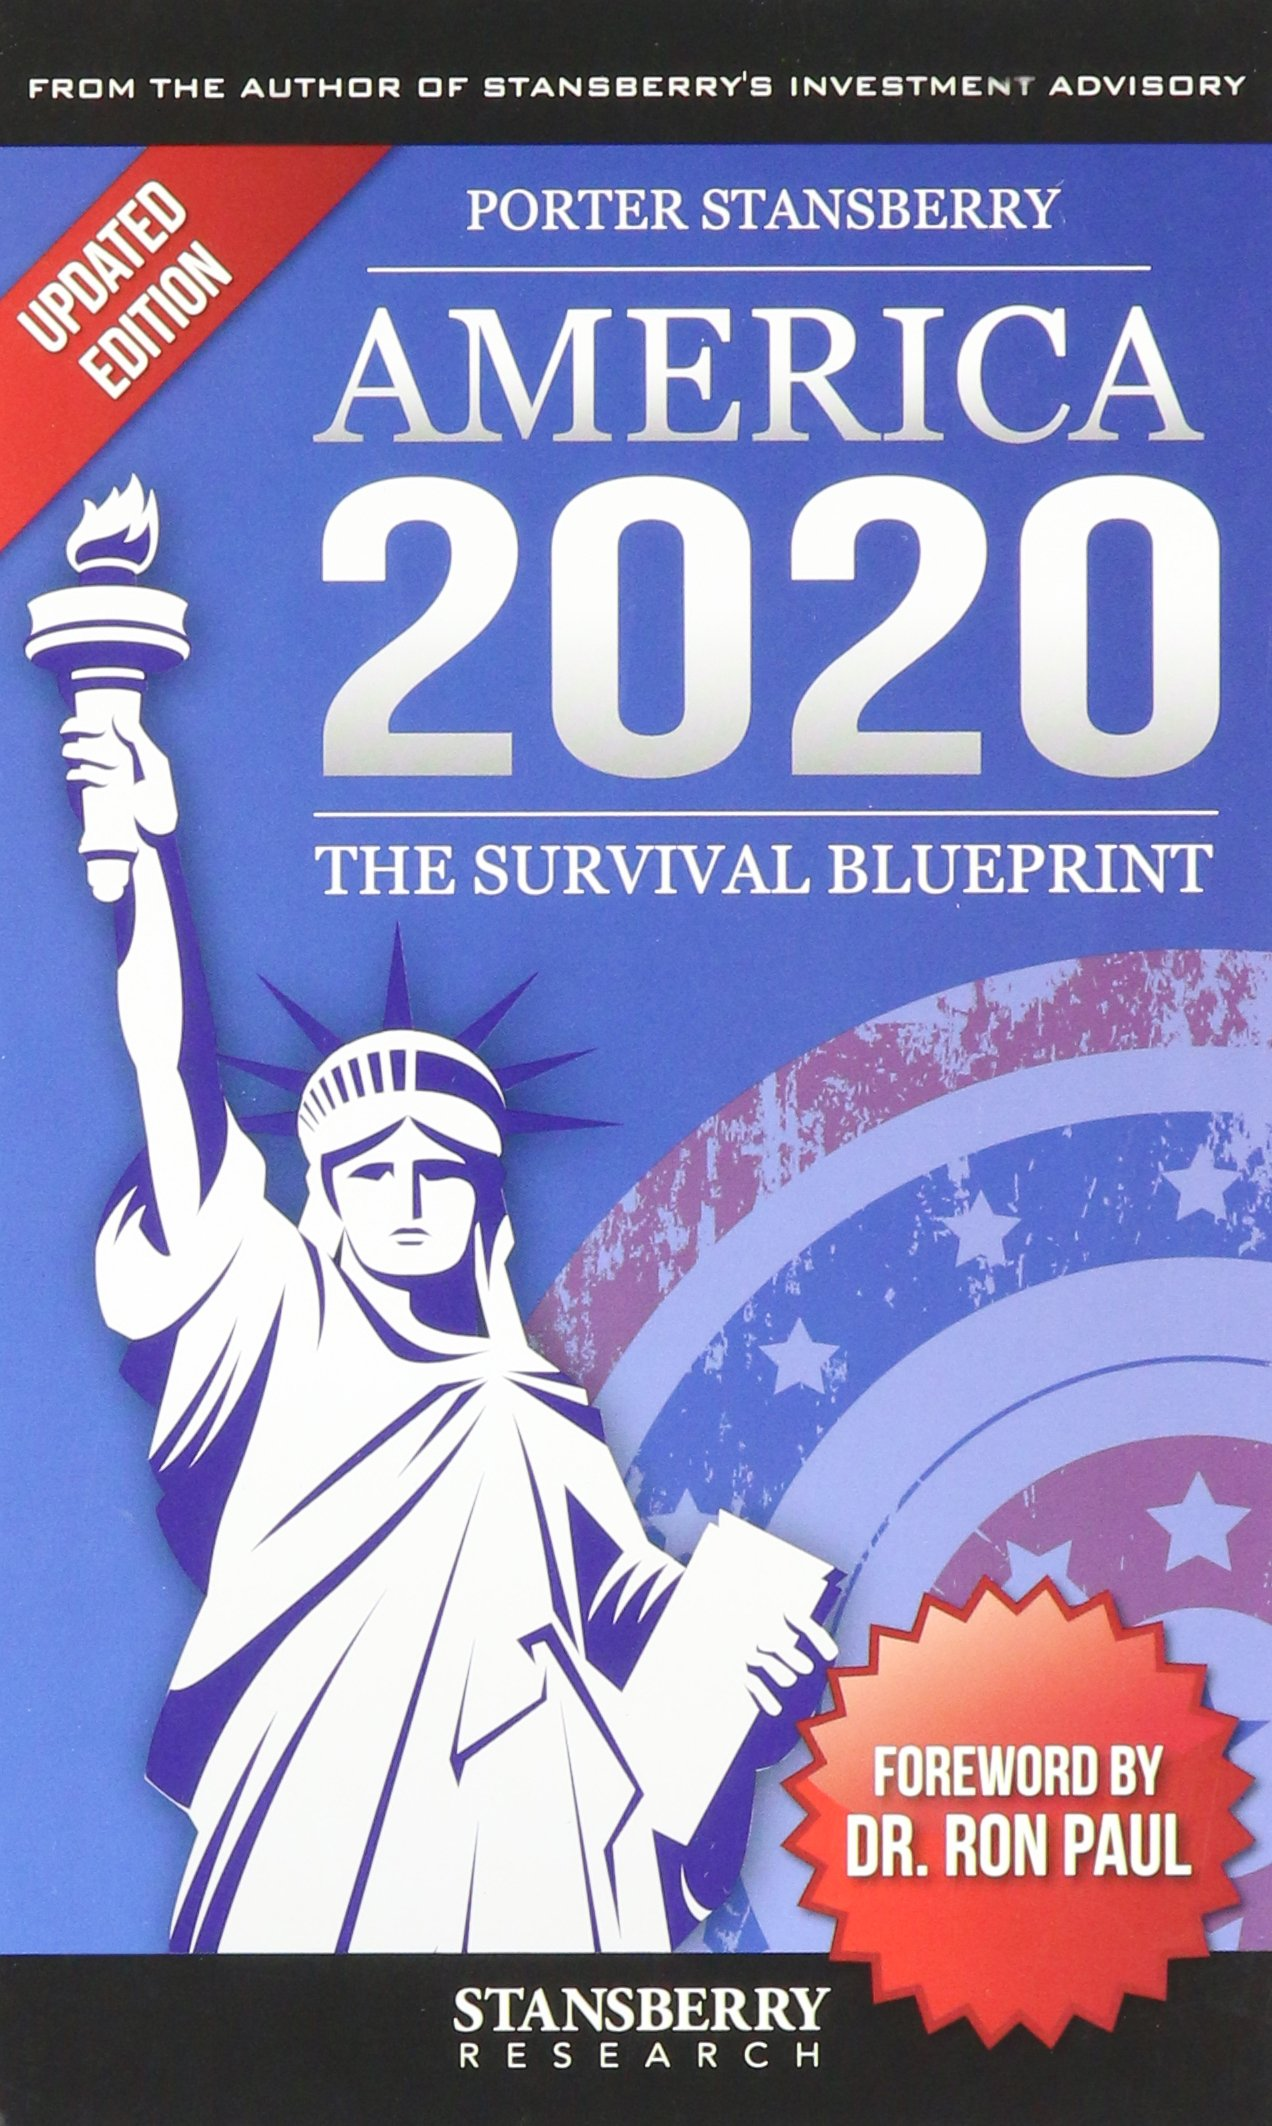 America 2020 the survival blueprint porter stansberry ron paul america 2020 the survival blueprint porter stansberry ron paul 9780990947233 amazon books malvernweather Gallery